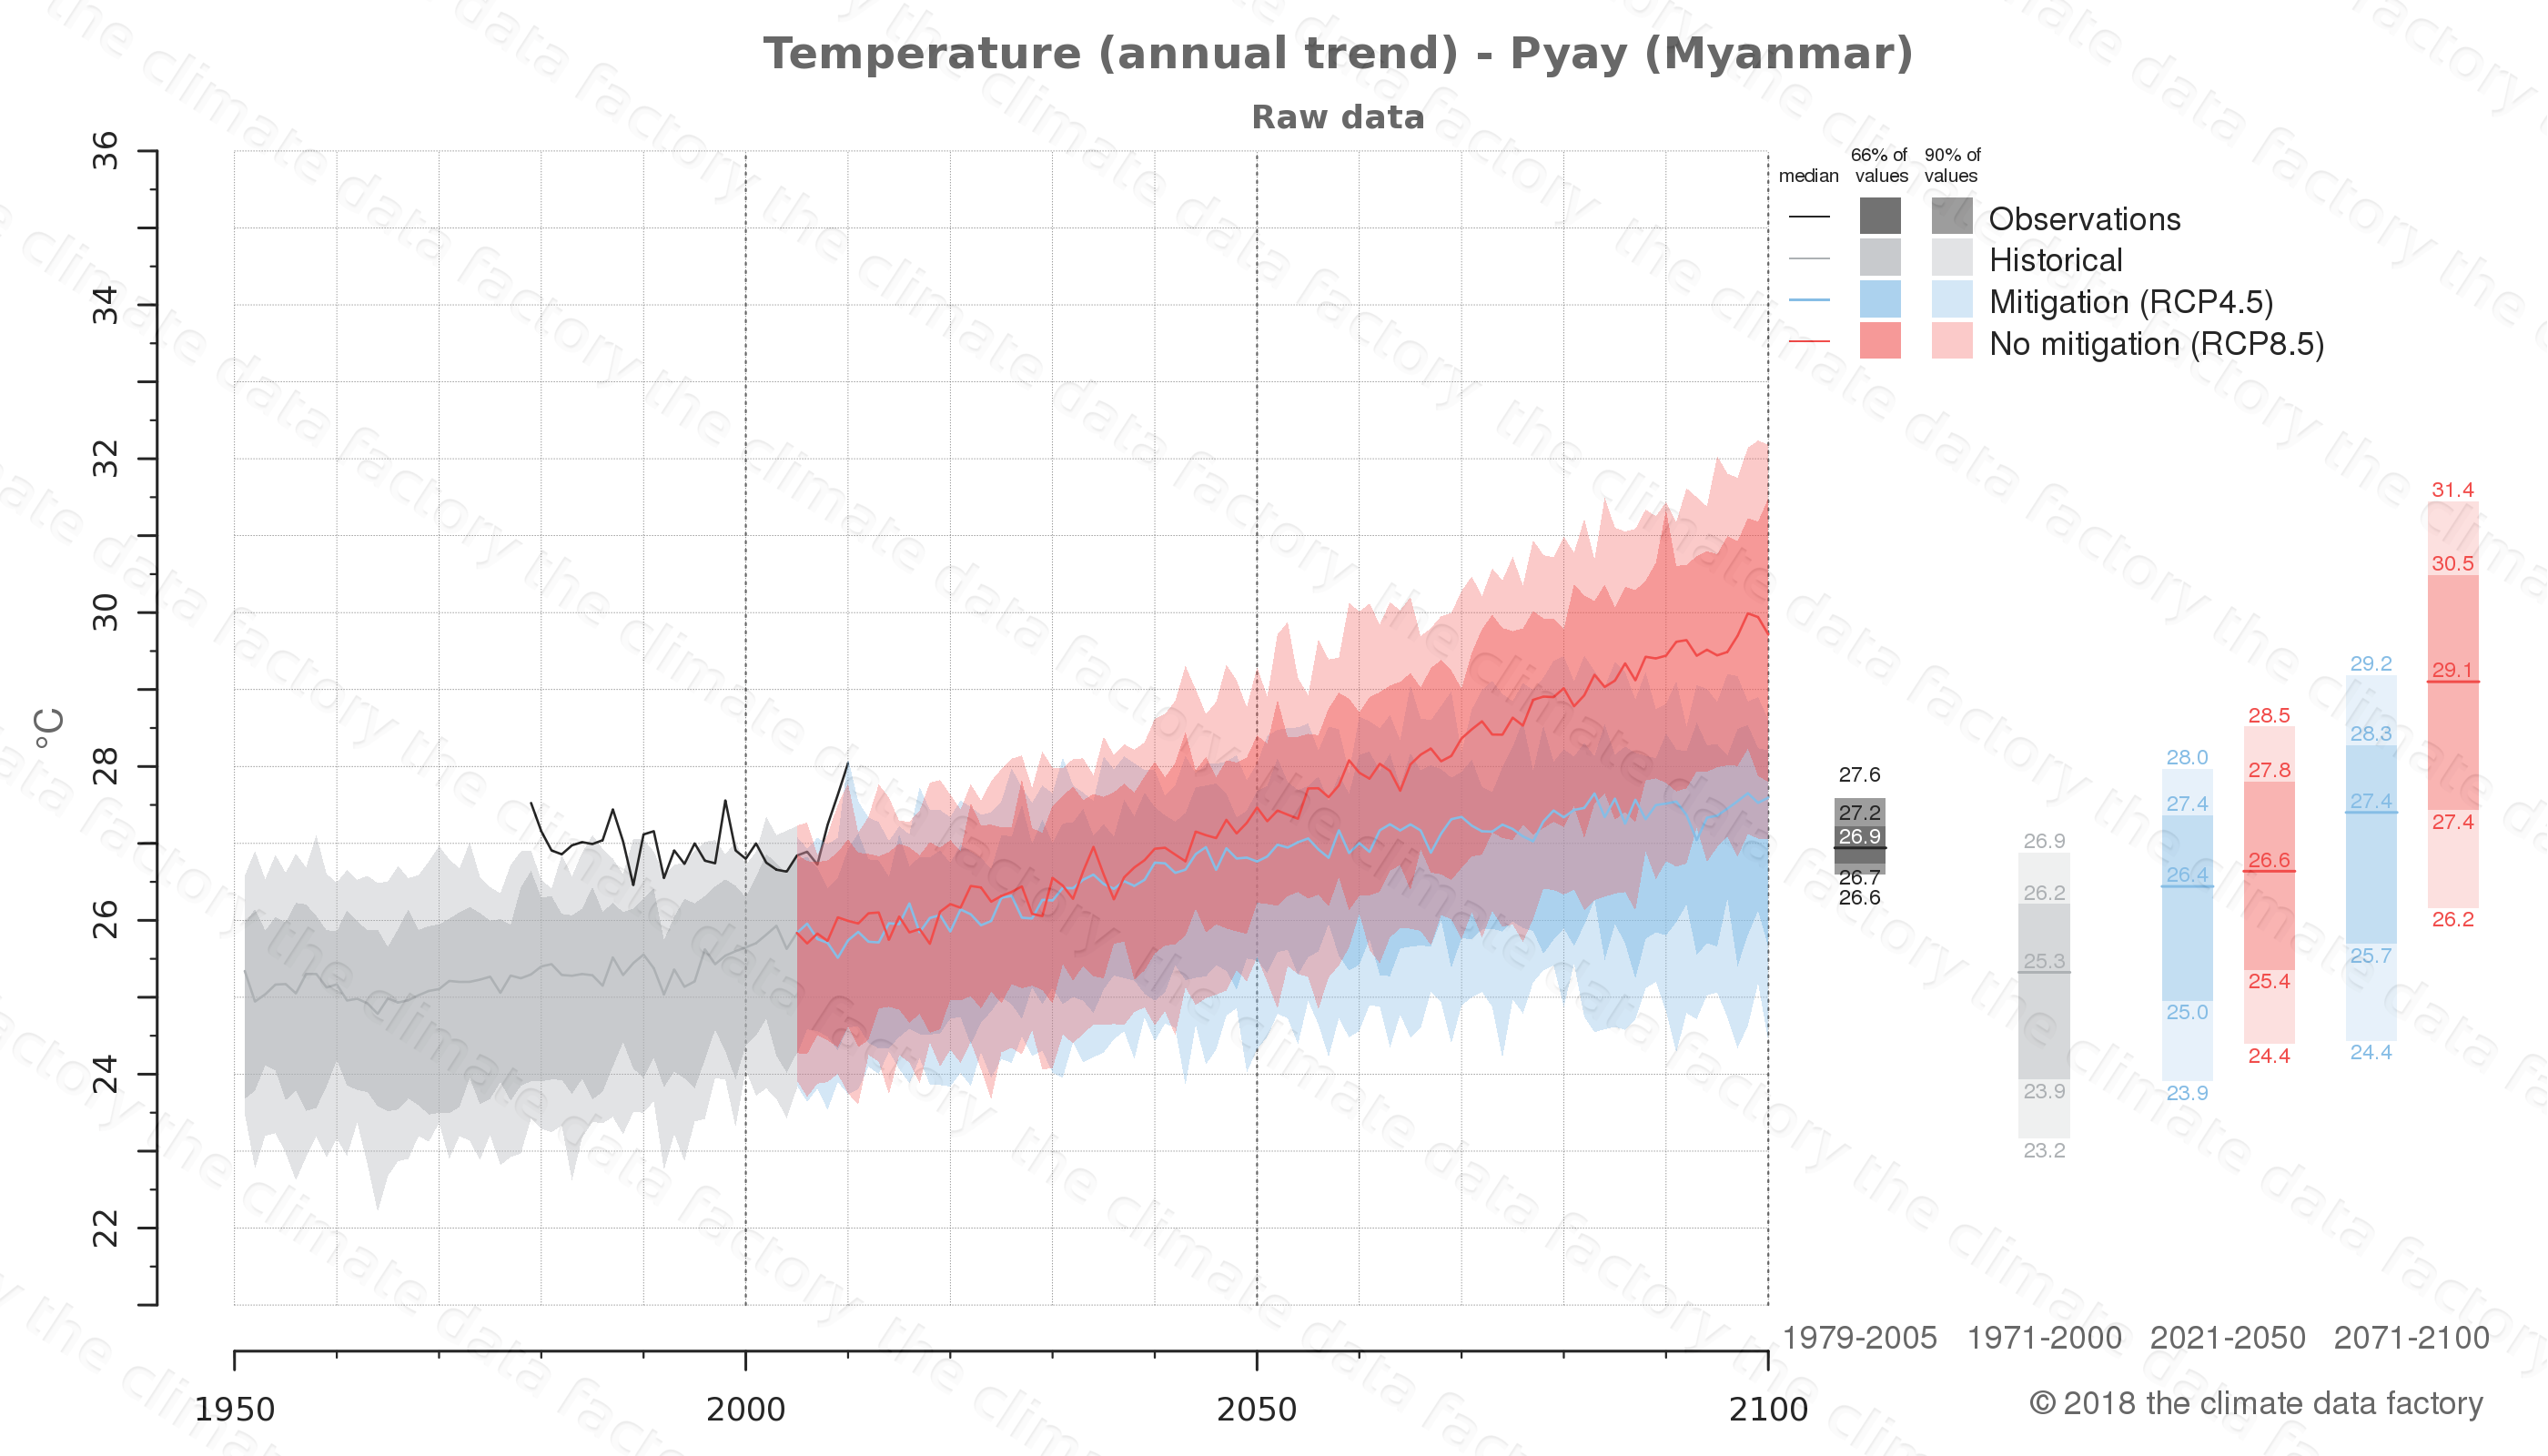 climate change data policy adaptation climate graph city data temperature pyay myanmar